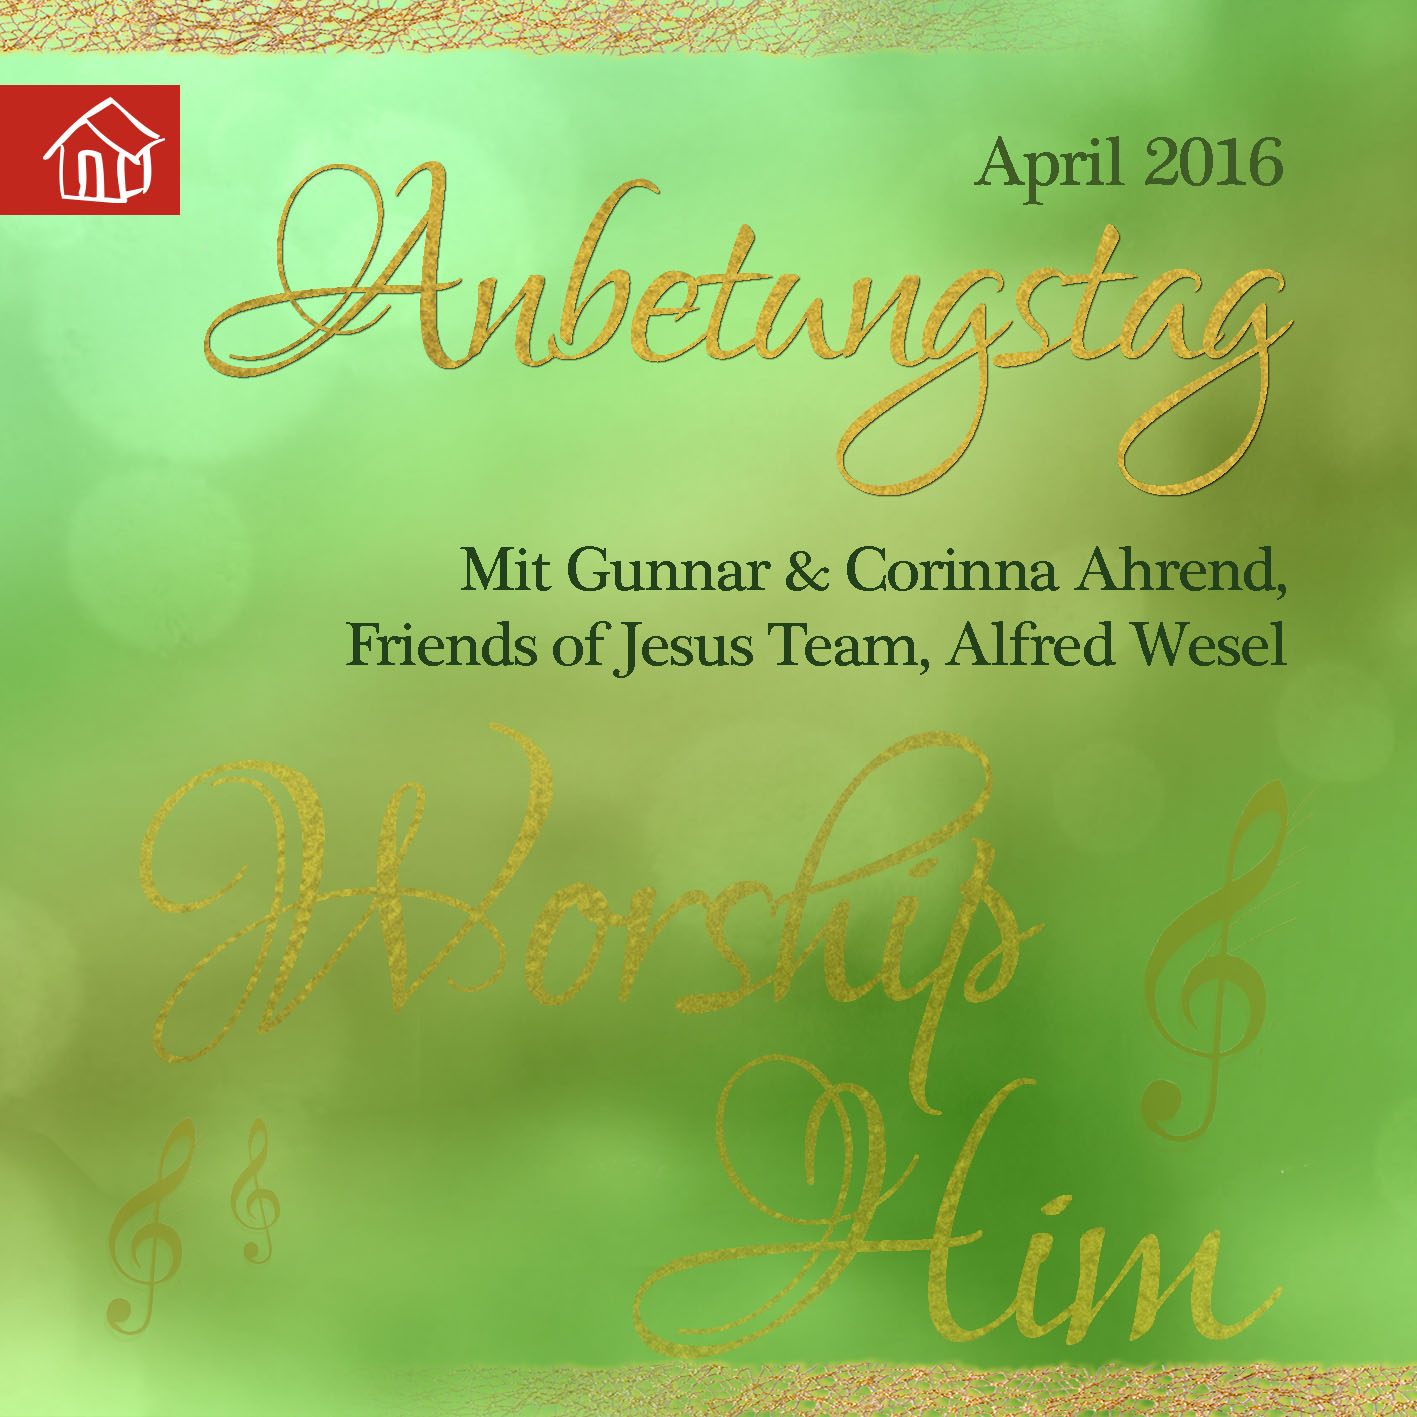 Cd-Cover - Anbetungstag April 2016